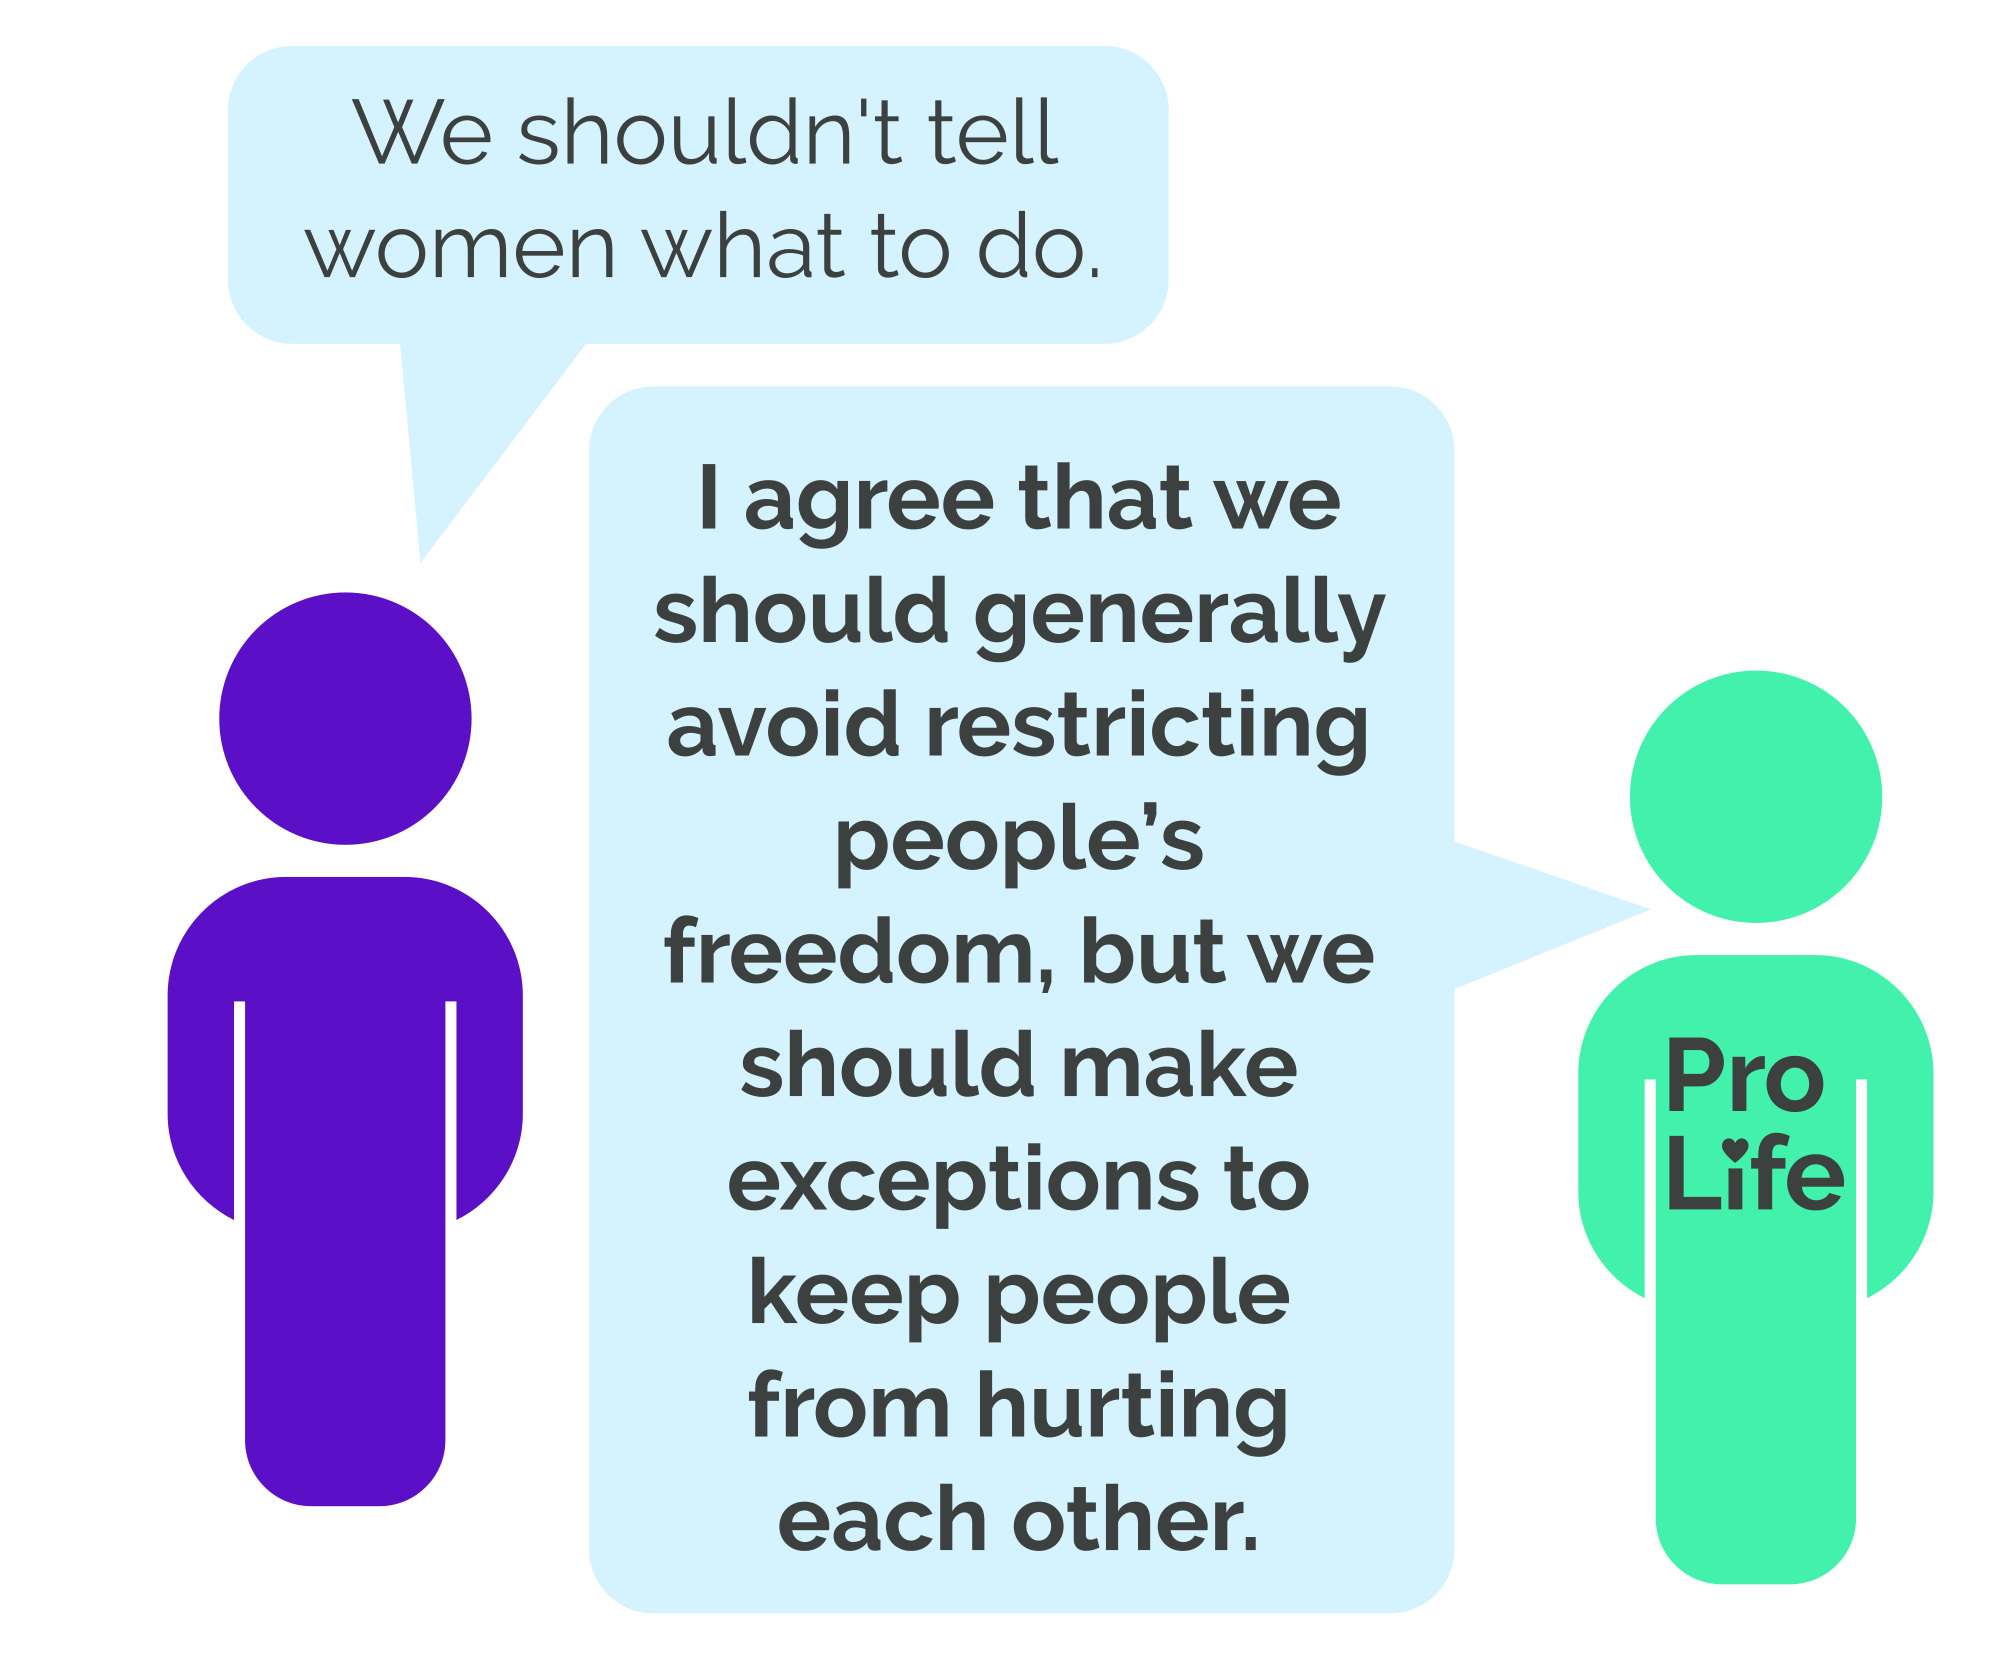 Person 1: We shouldn't tell women what to do. Person 2 (our hero): I agree that we should generally avoid restricting people's freedom, but we should make exceptions to keep people from hurting each other.